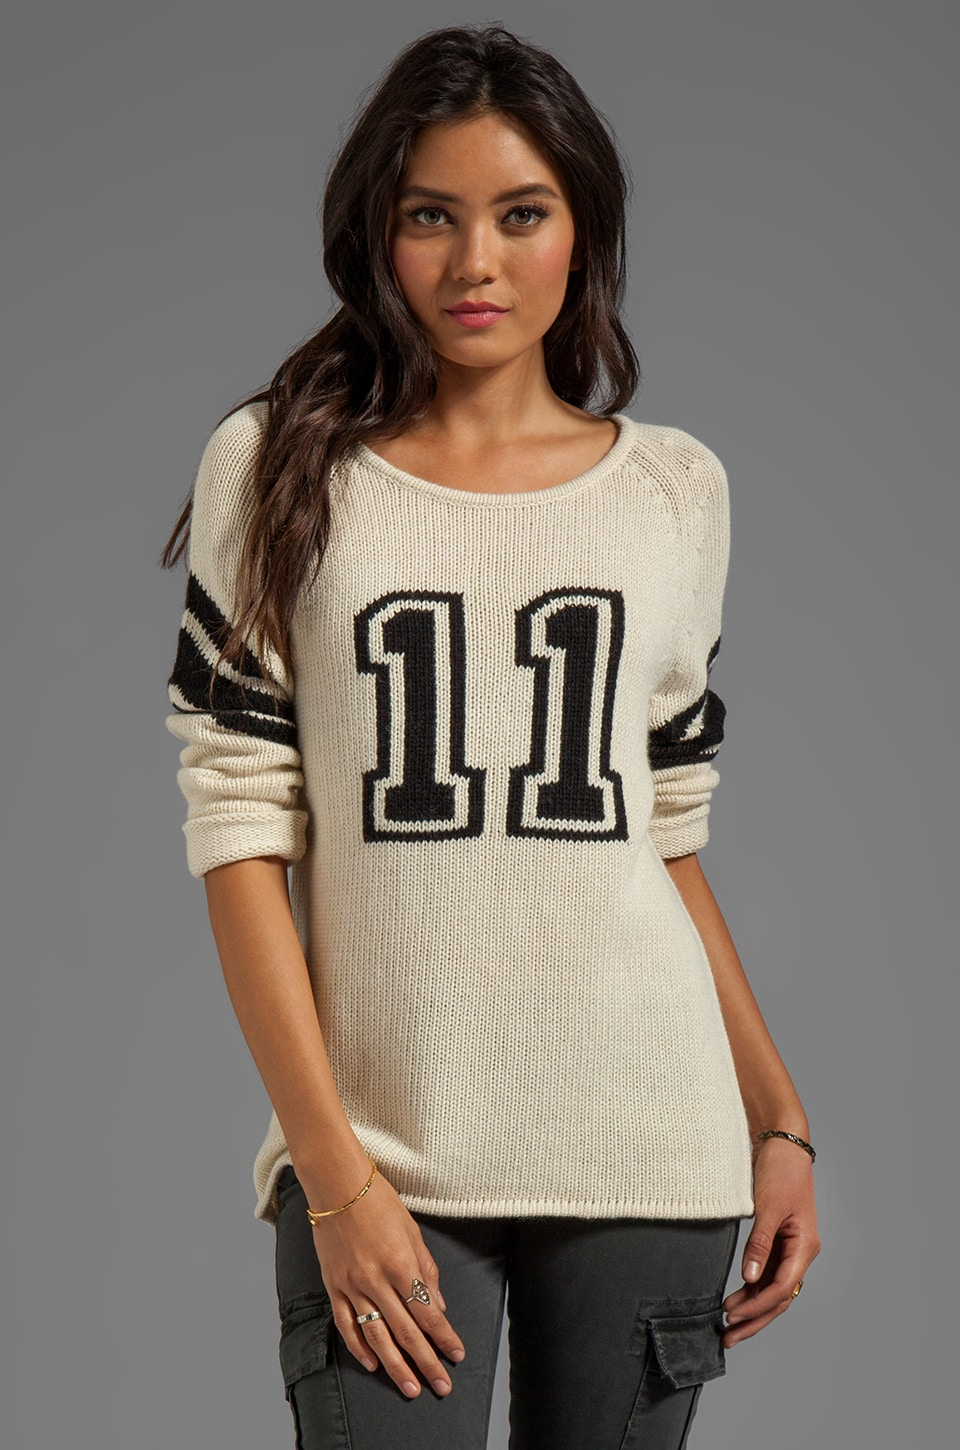 TOWNSEN Varsity Sweater in Cream